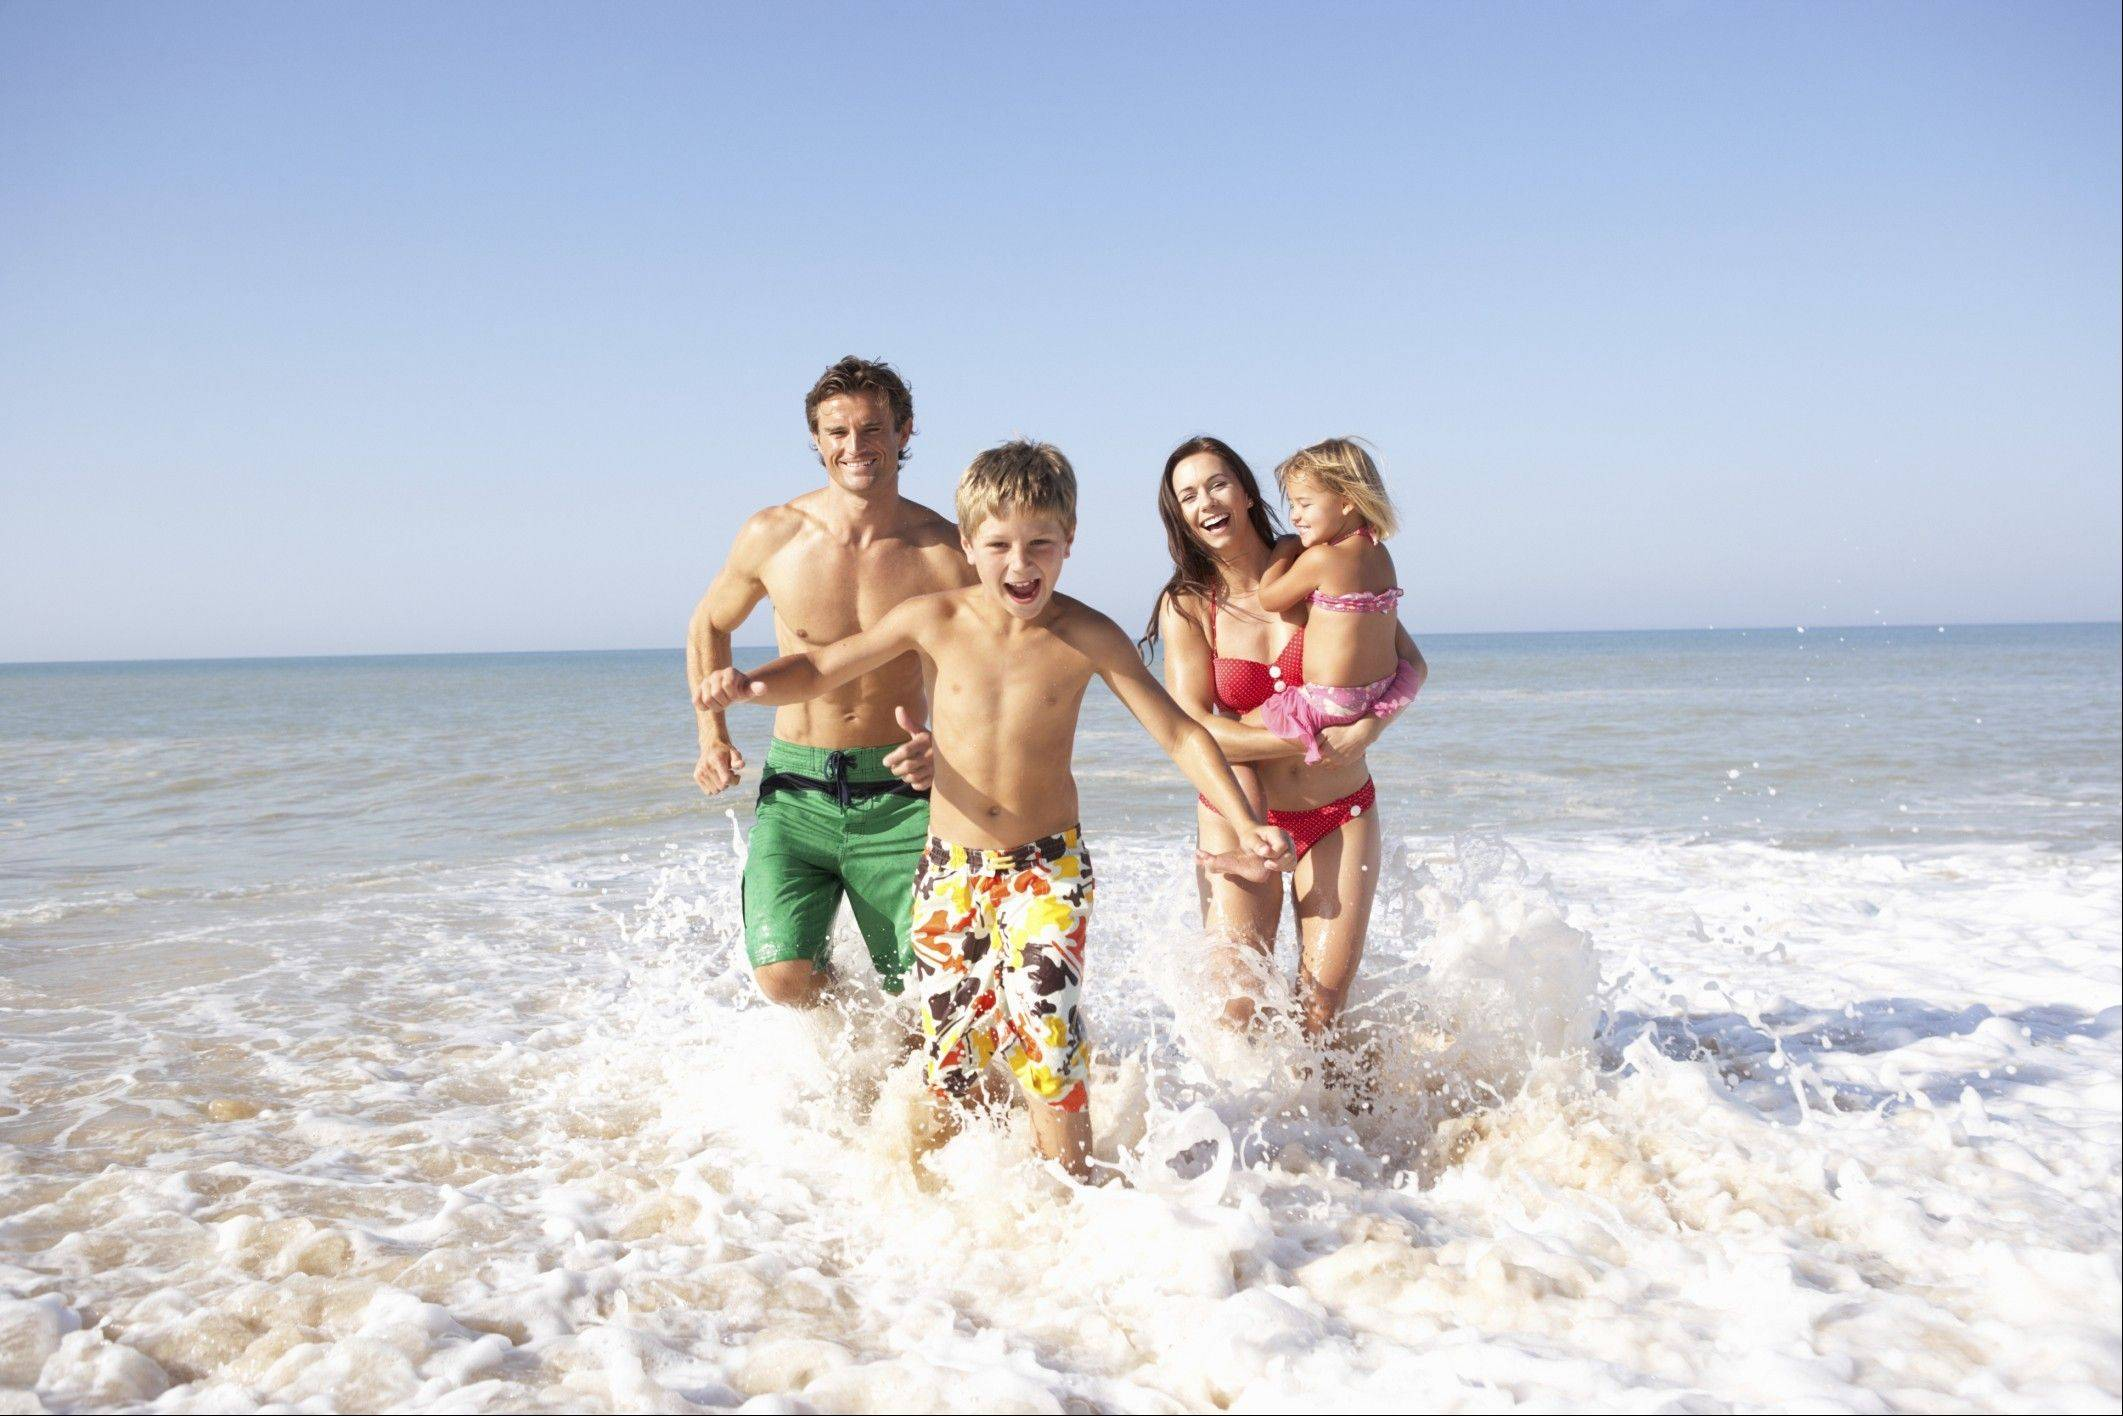 Sand and surf and family bonding combine for a memorable summer vacation. But there are lots of other options.